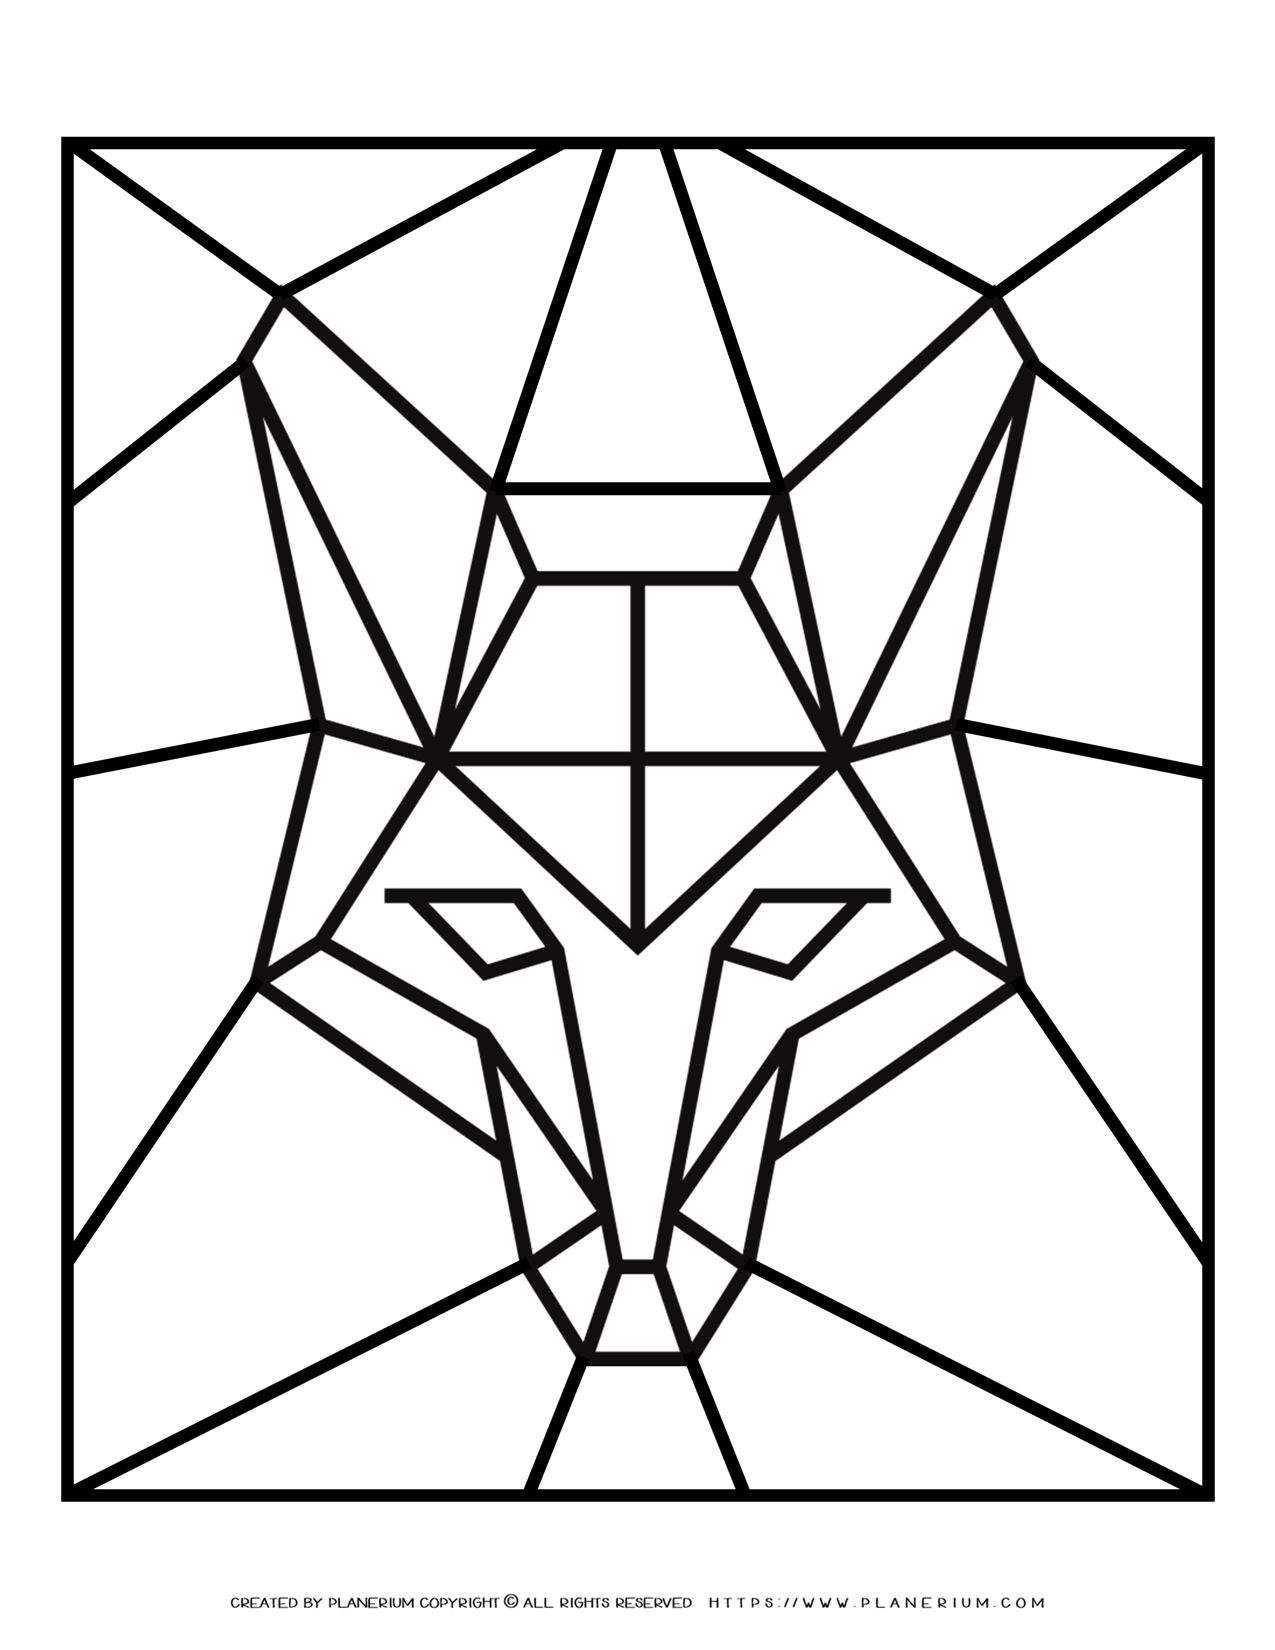 Adult Coloring Pages - Geometric Animals - Fox - Free Printable | Planerium